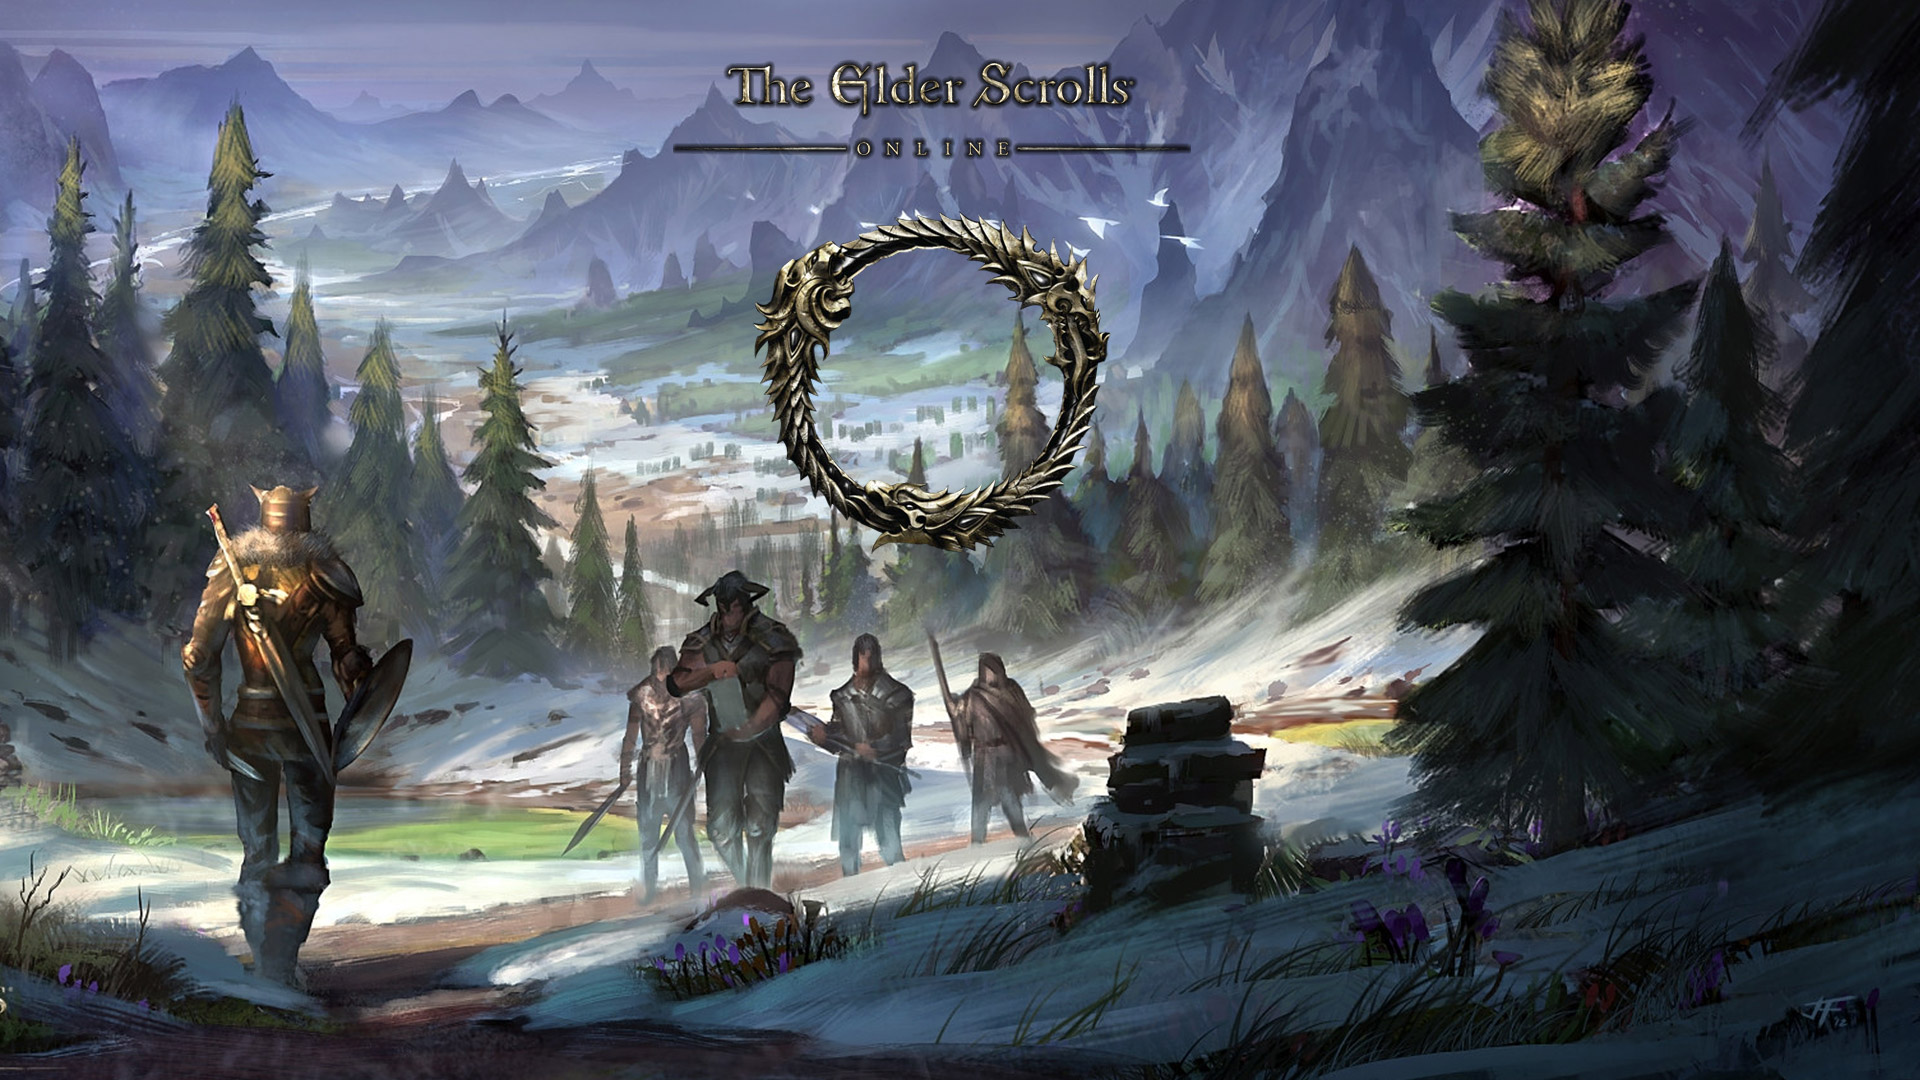 The Elder Scrolls Online wallpaper 5